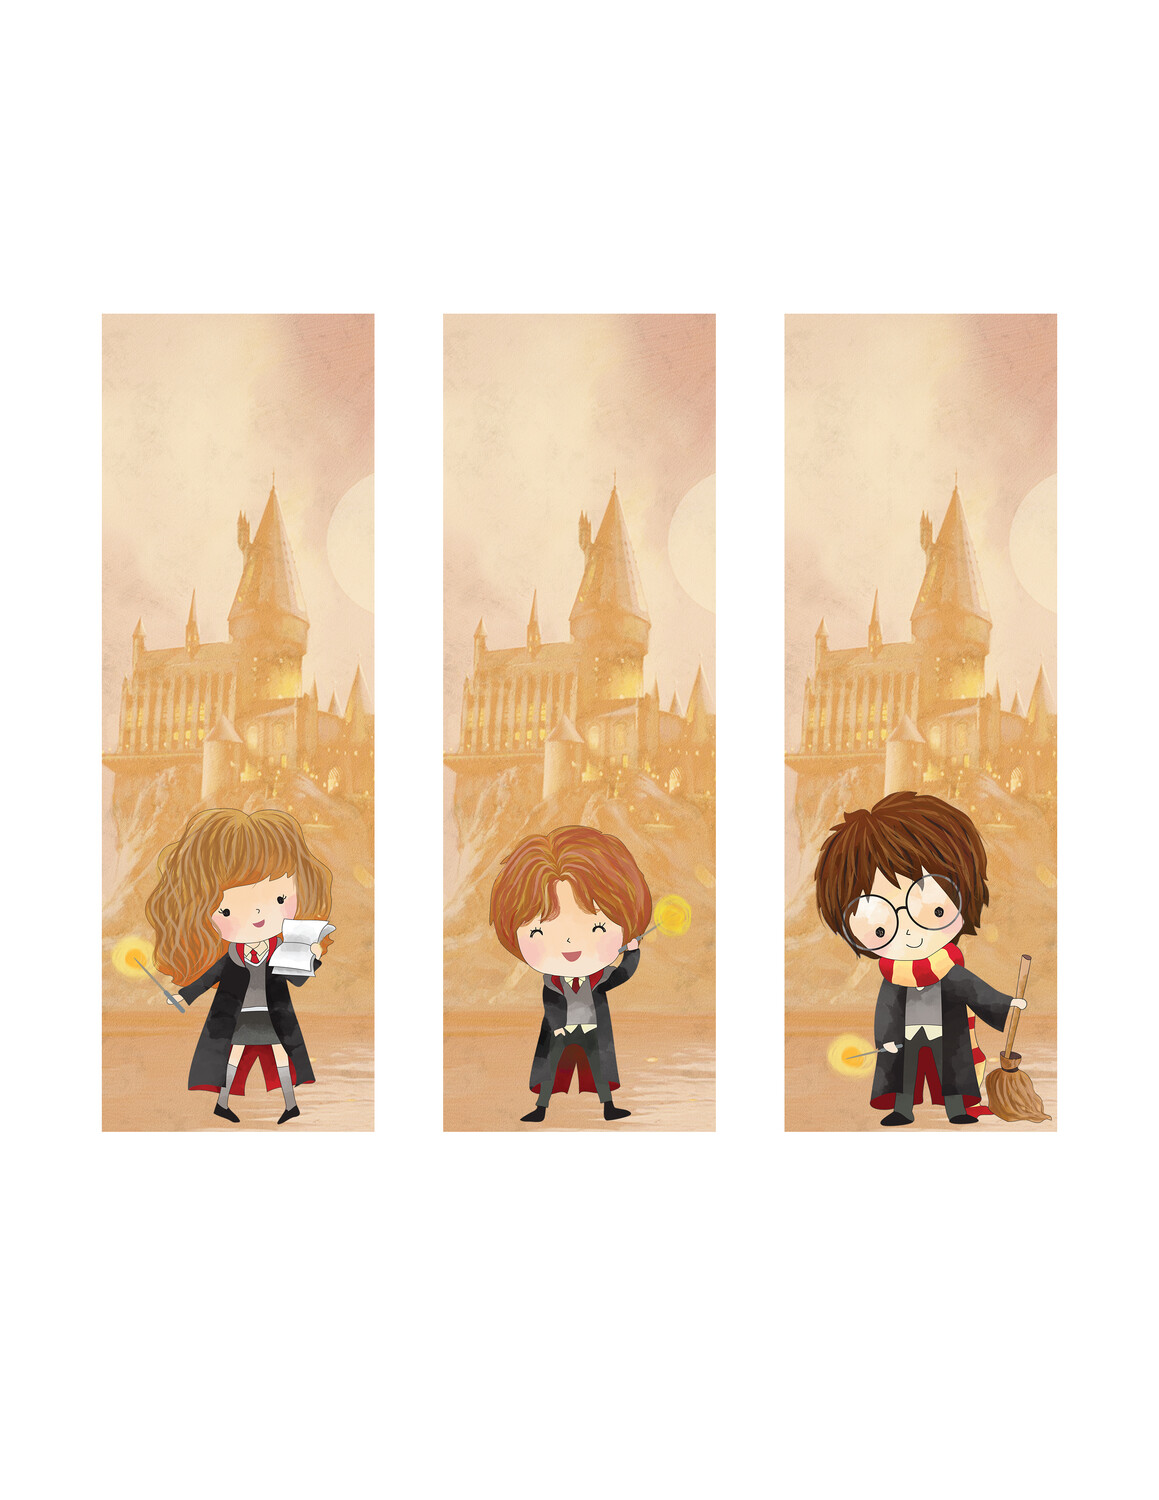 Cute Harry Potter Character Bookmarks- Free Printables, perfect for Summer Reading!